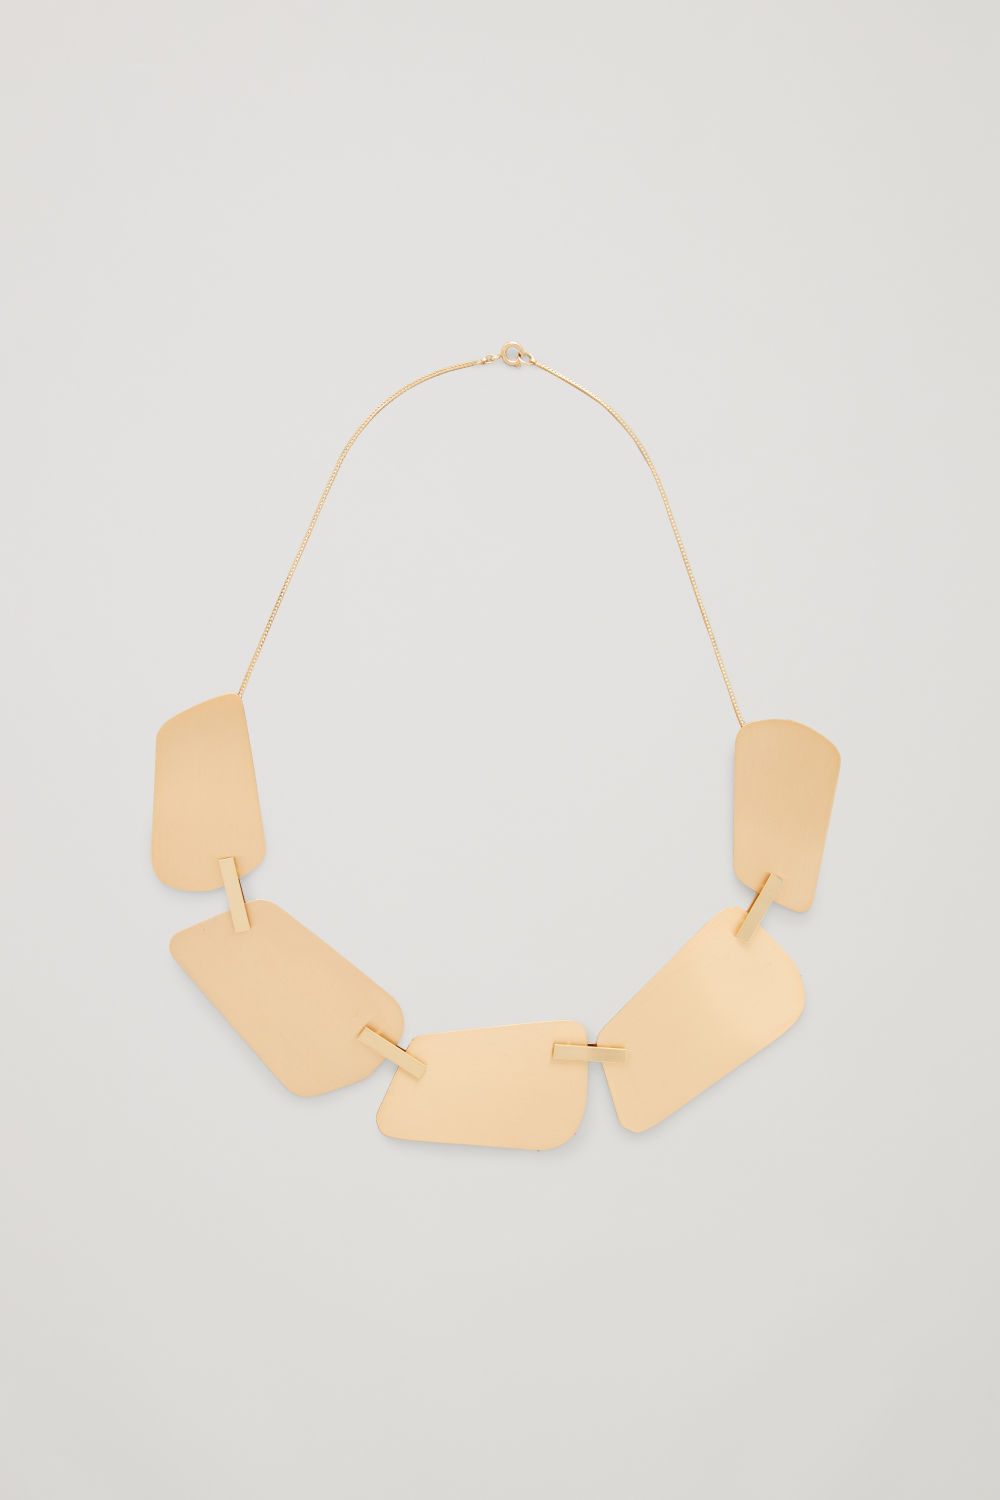 STAPLE-DETAILED SHORT NECKLACE